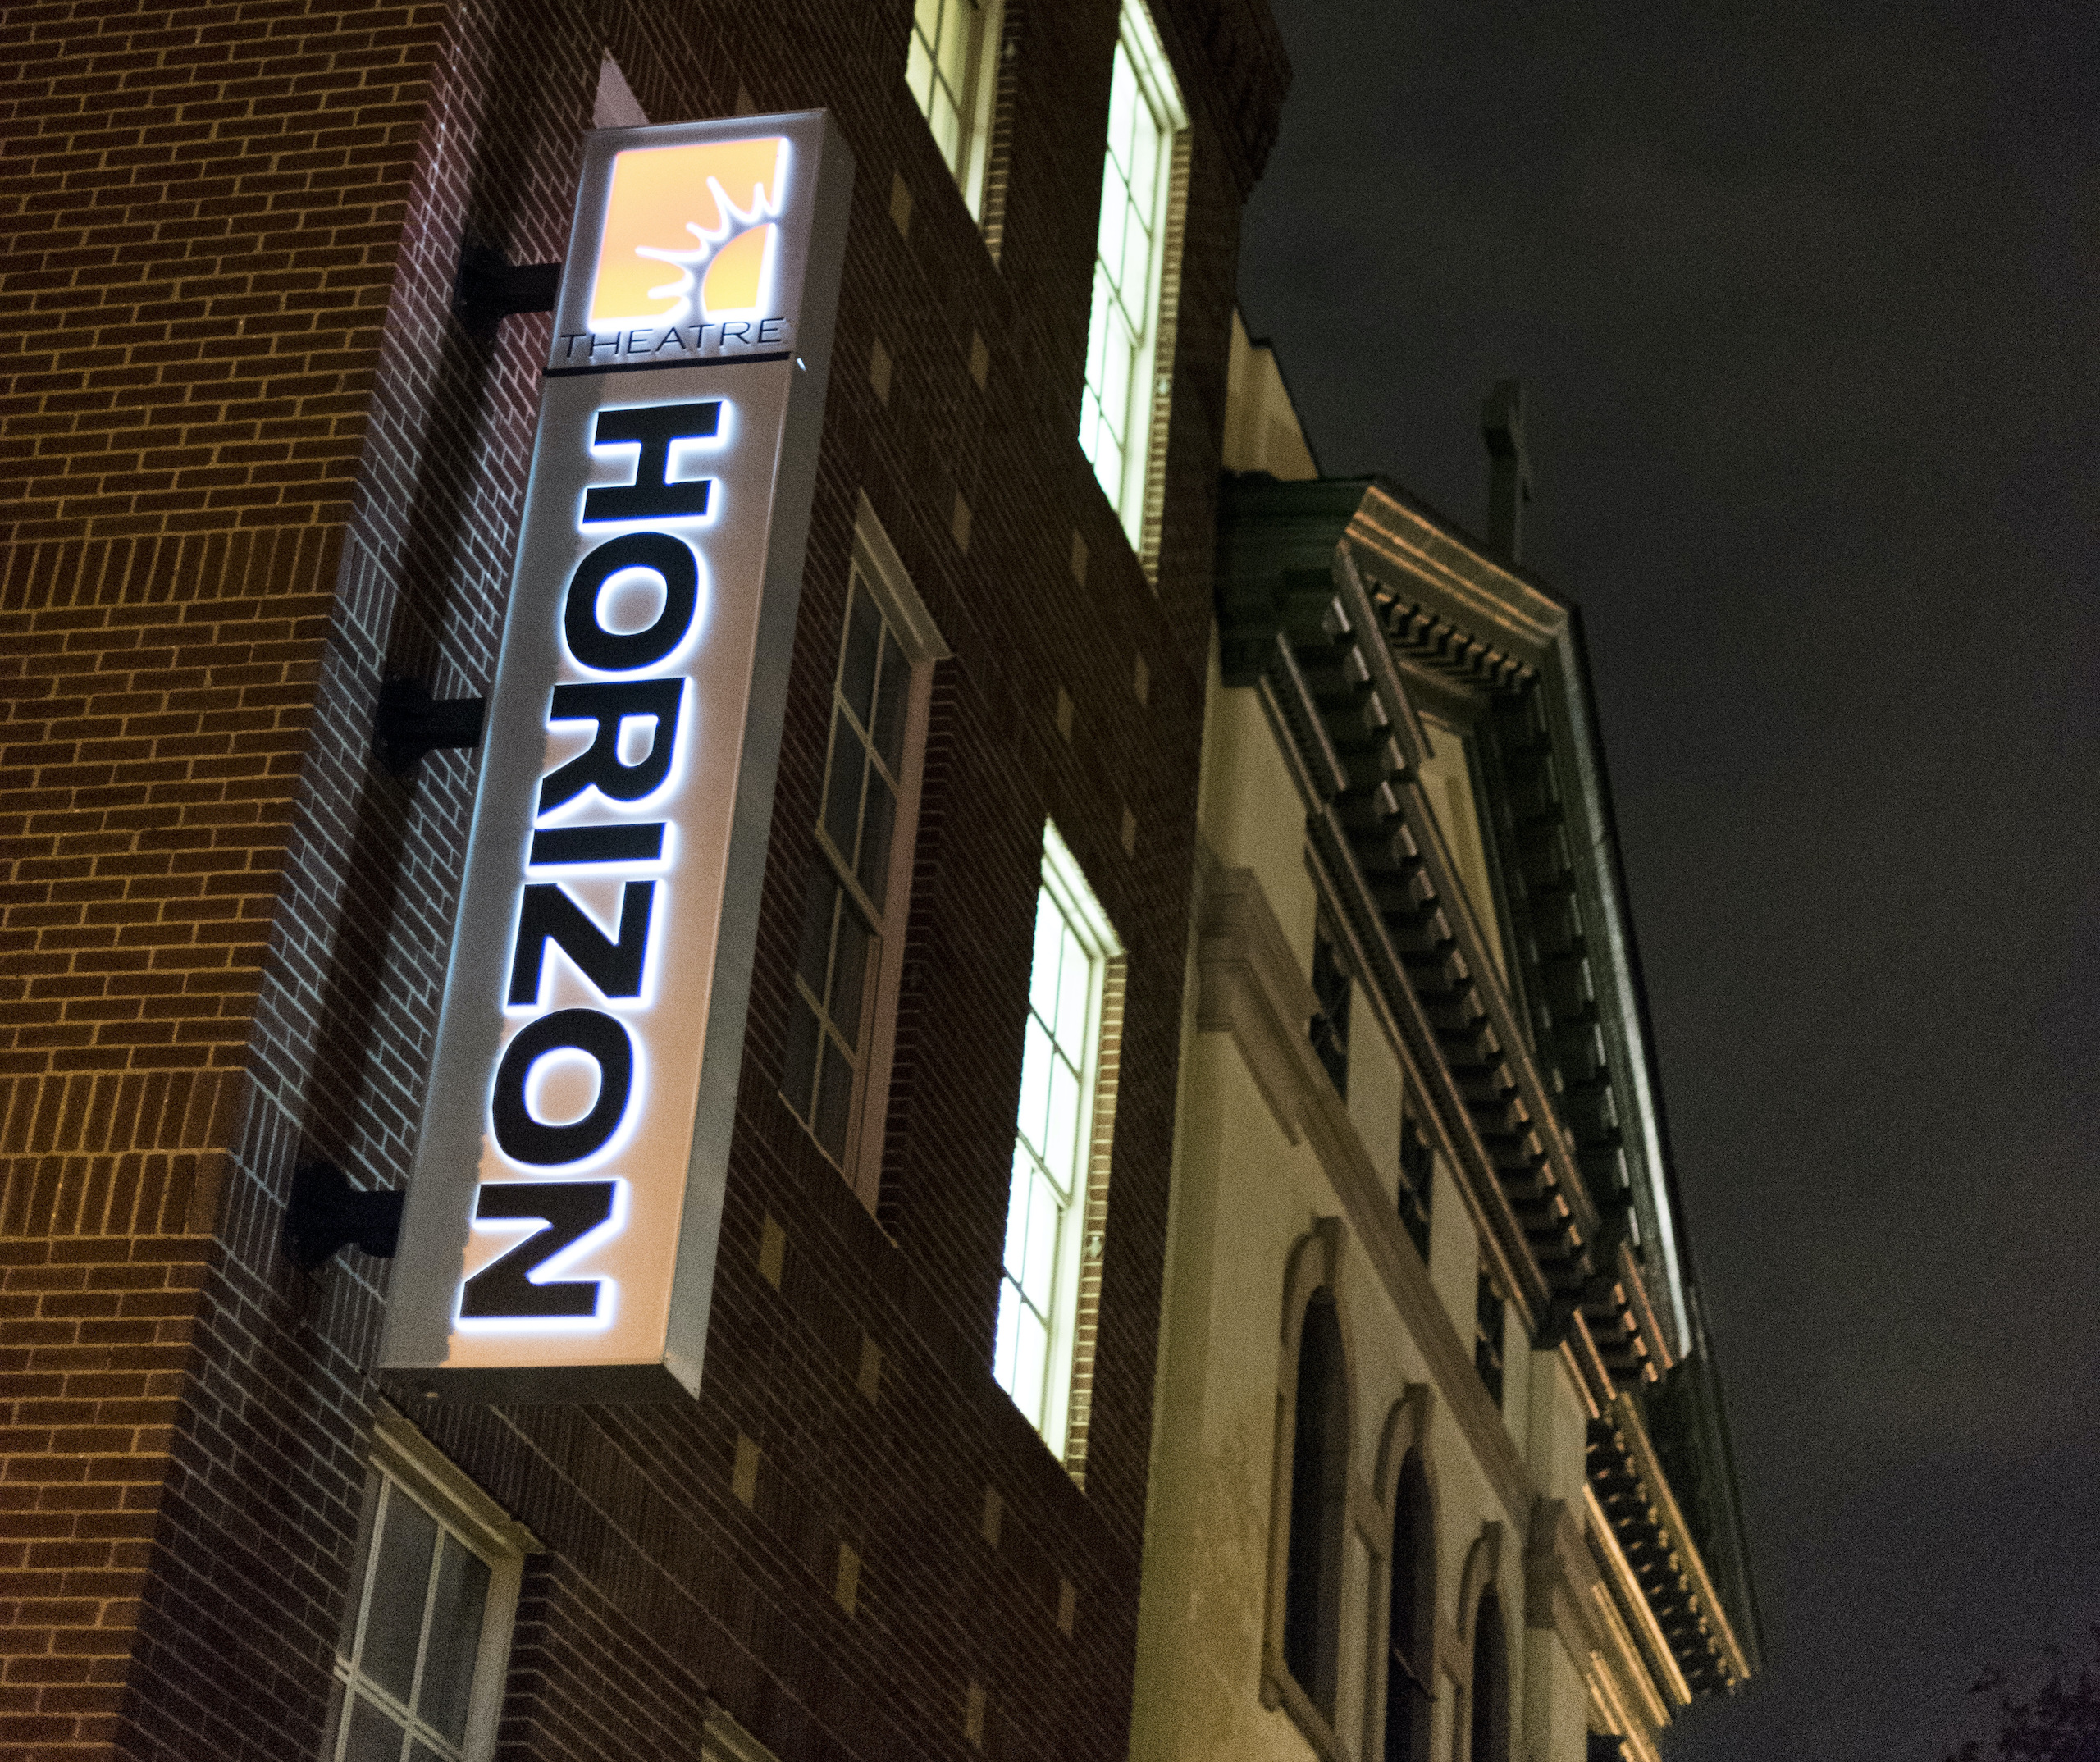 Theatre Horizon casting for households to create virtual pandemic performances